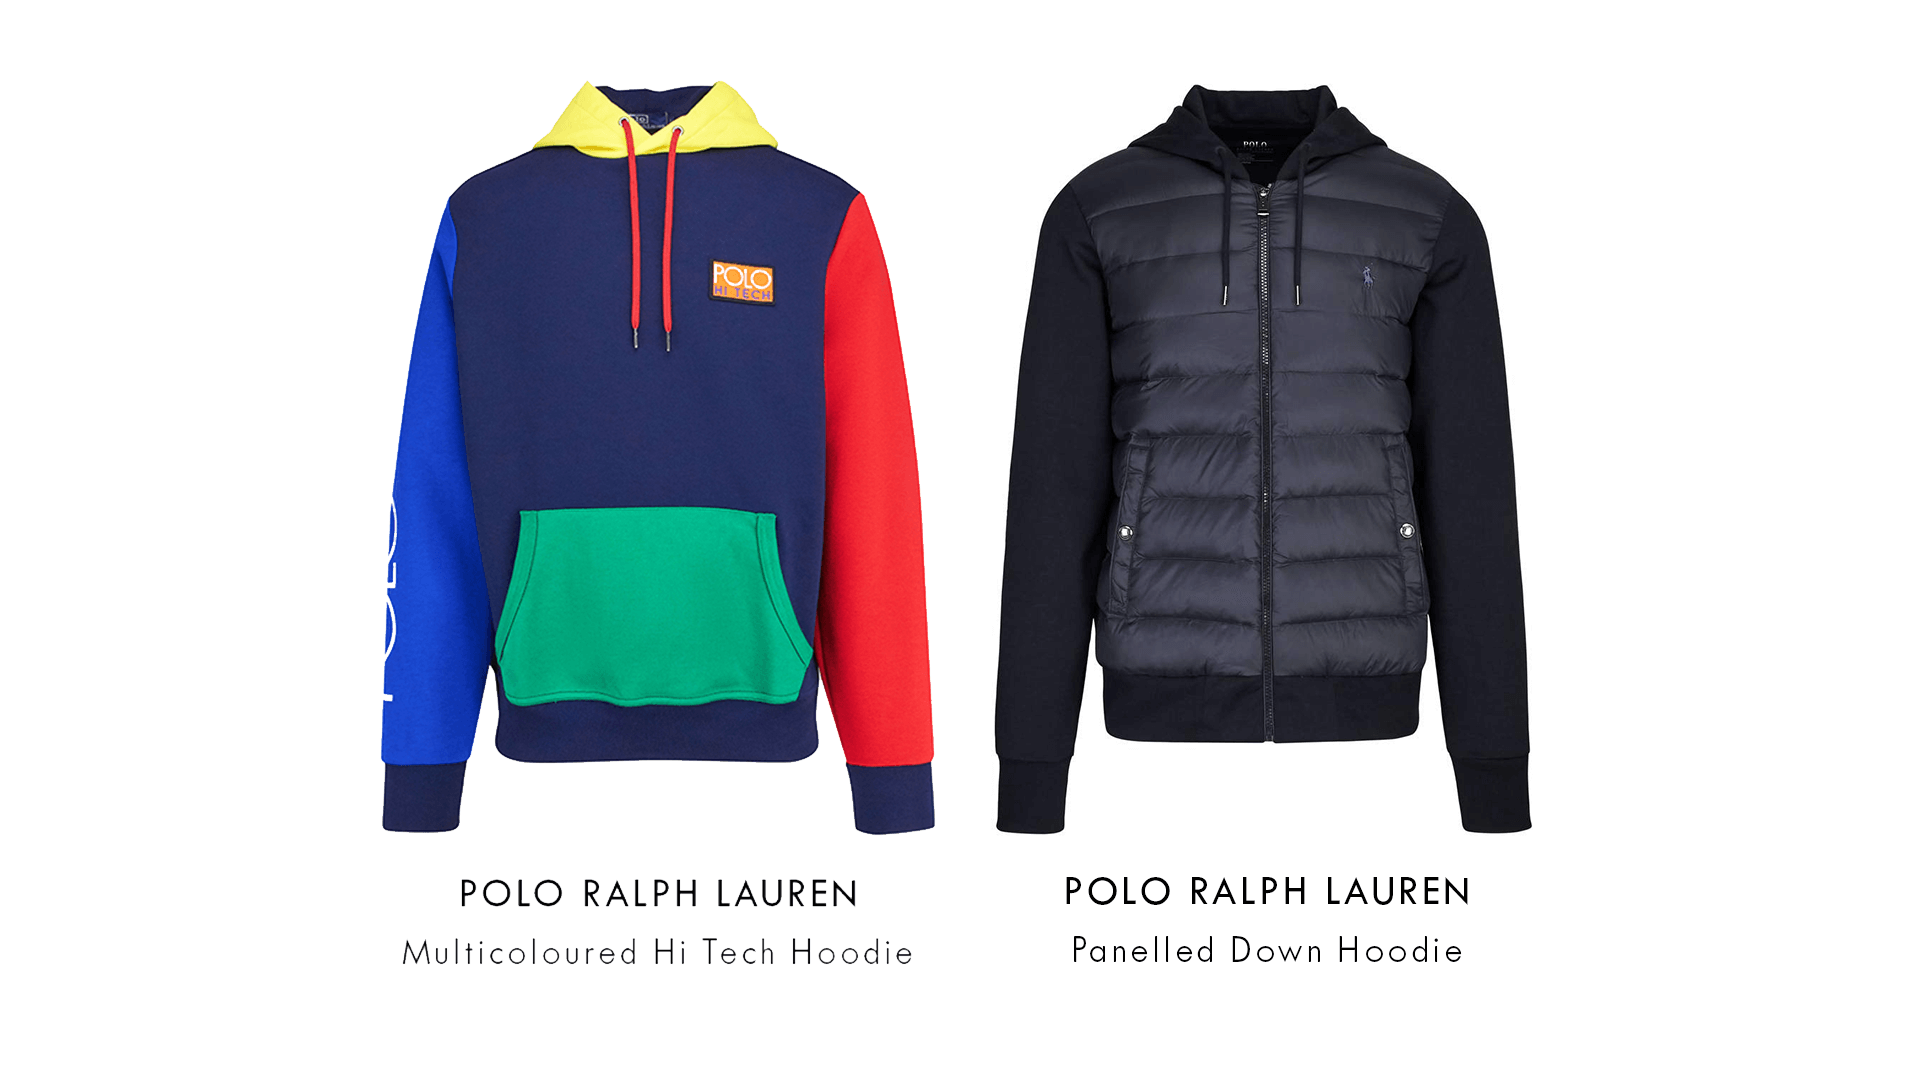 Polo Ralph Lauren Hi Tech Athleisure Blog Post Look 03